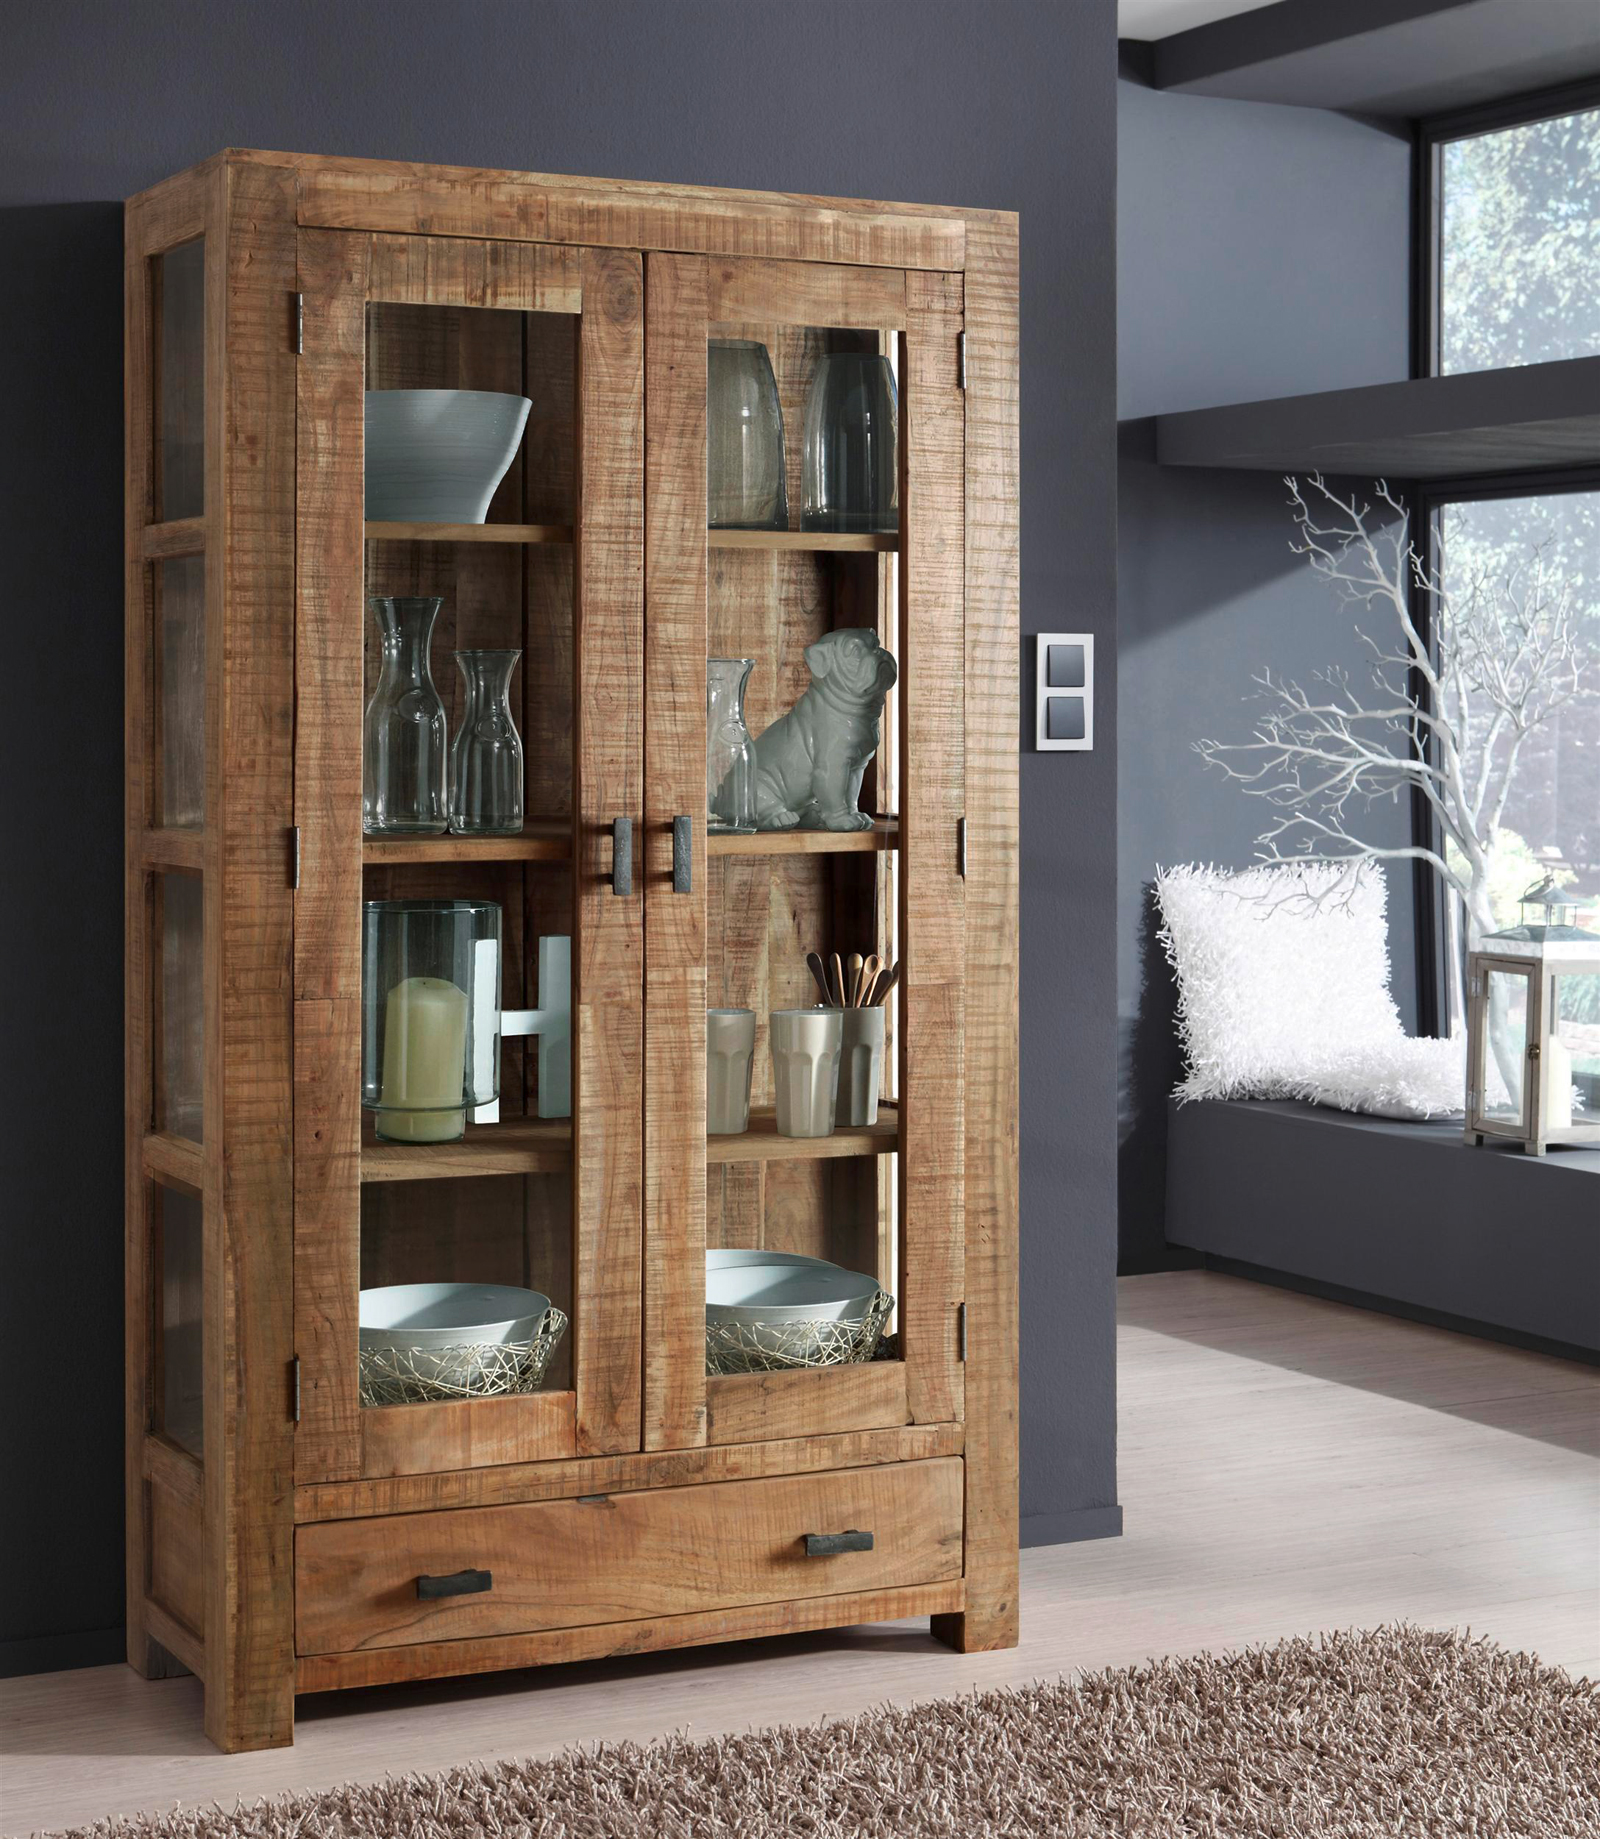 sale vitrine glasvitrine aus akazie 175 x 100 cm in natur christel. Black Bedroom Furniture Sets. Home Design Ideas